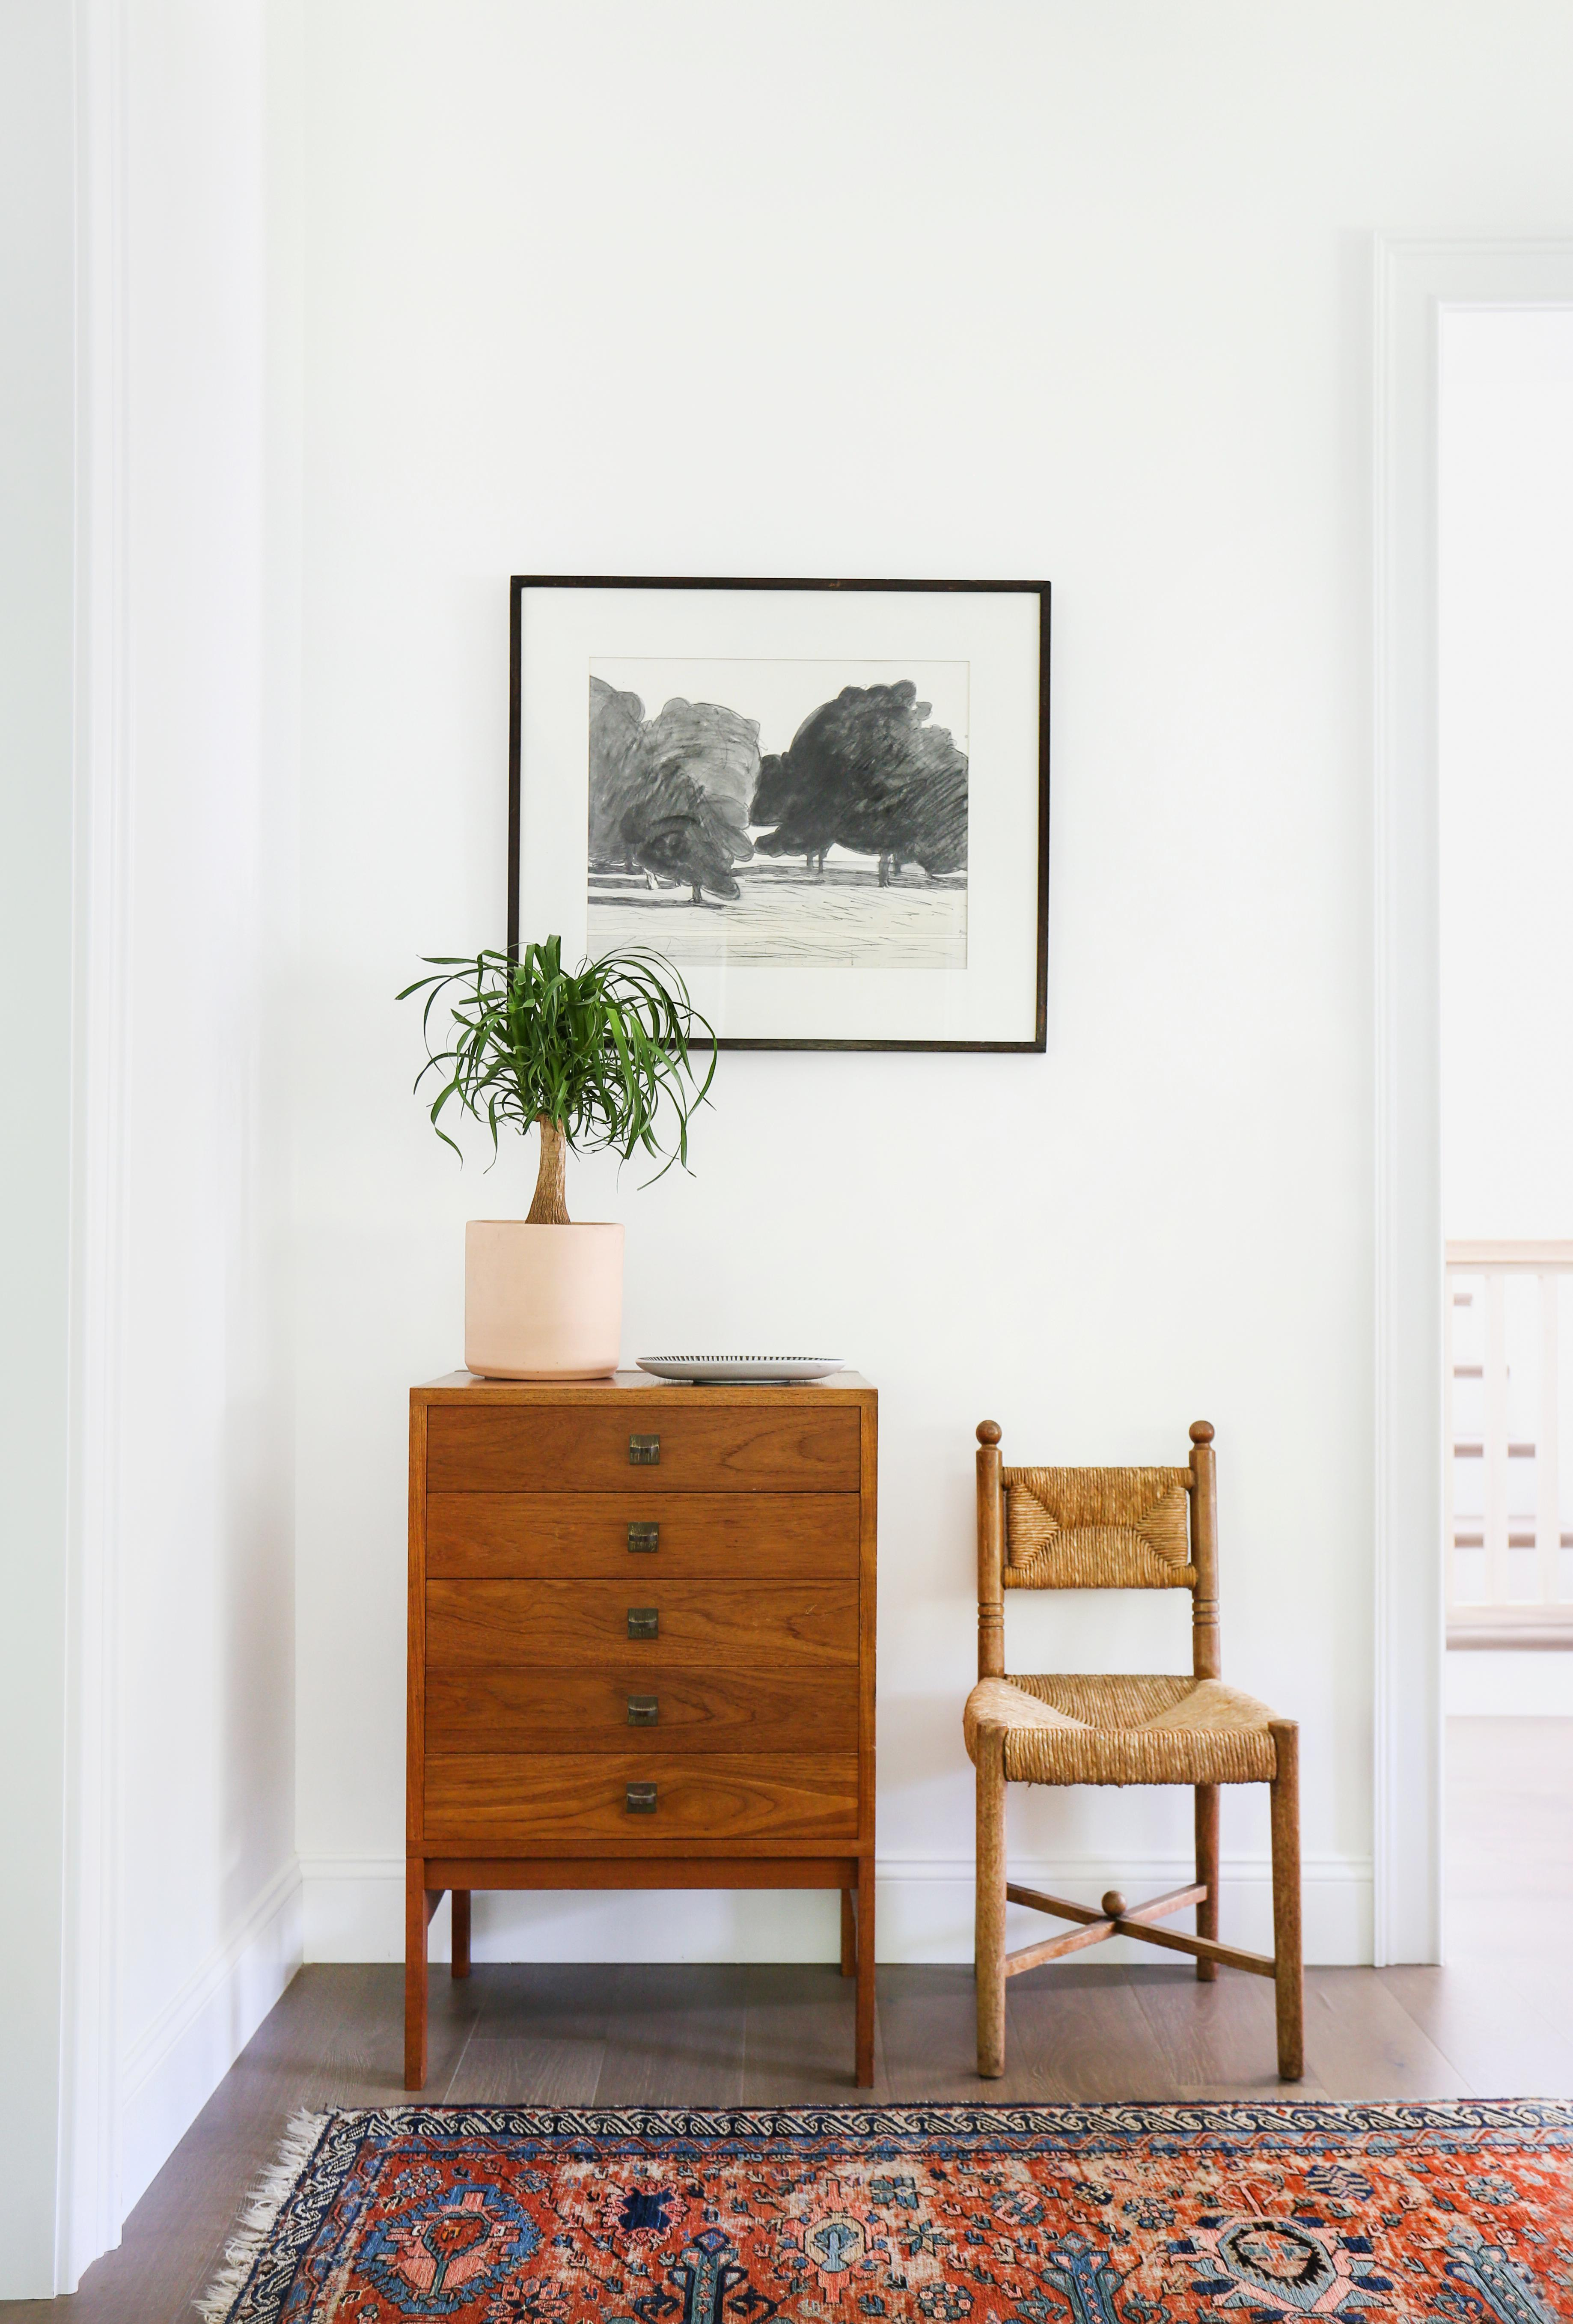 Wise Ways to Keep Your Home Decor Looking Like New